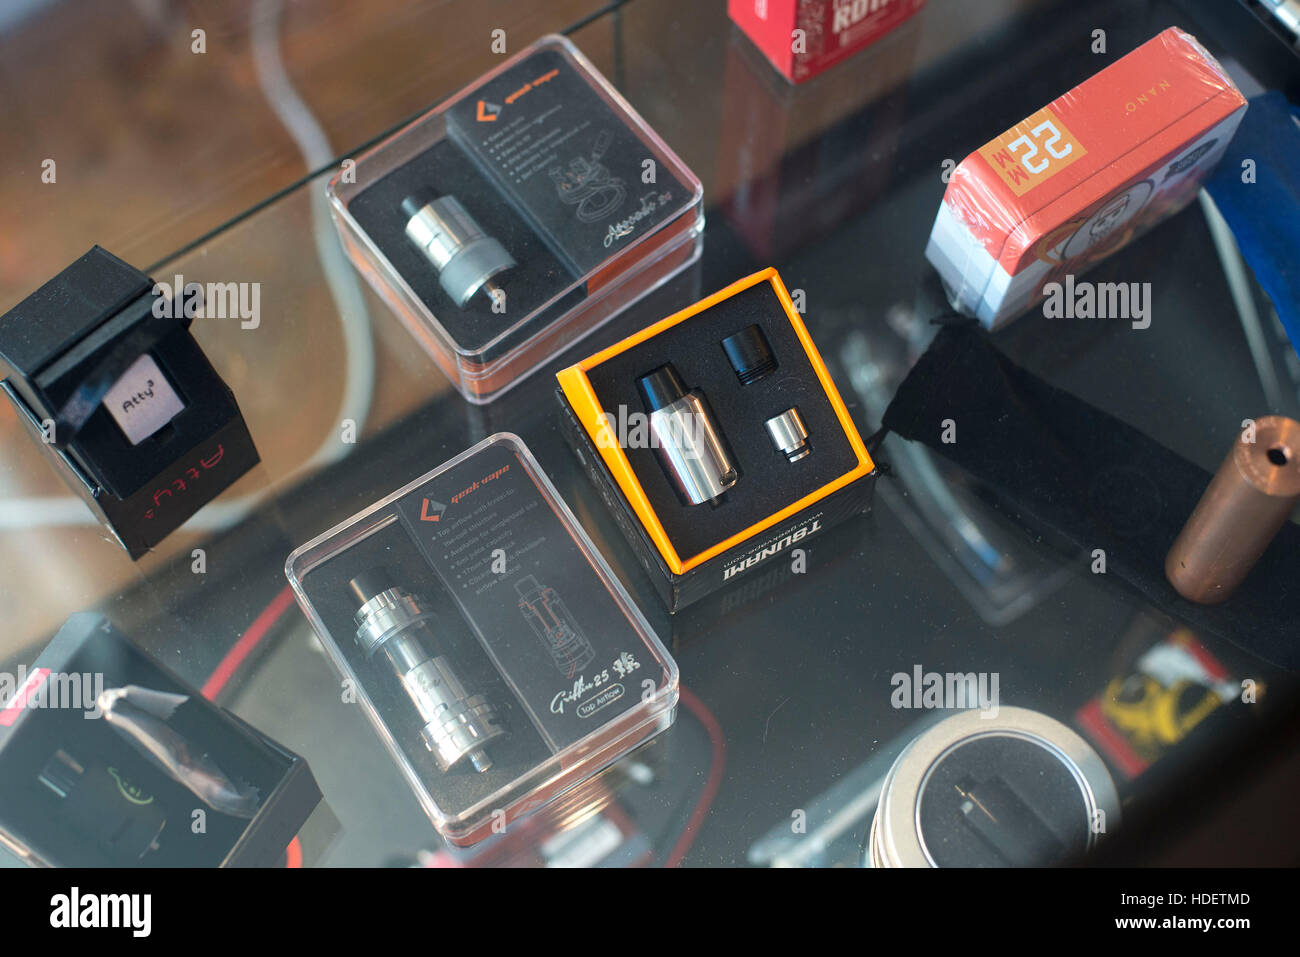 Caerphilly, Wales. November 26th 2016. The Vape House. Detail shot of products displayed in a glass counter at The - Stock Image